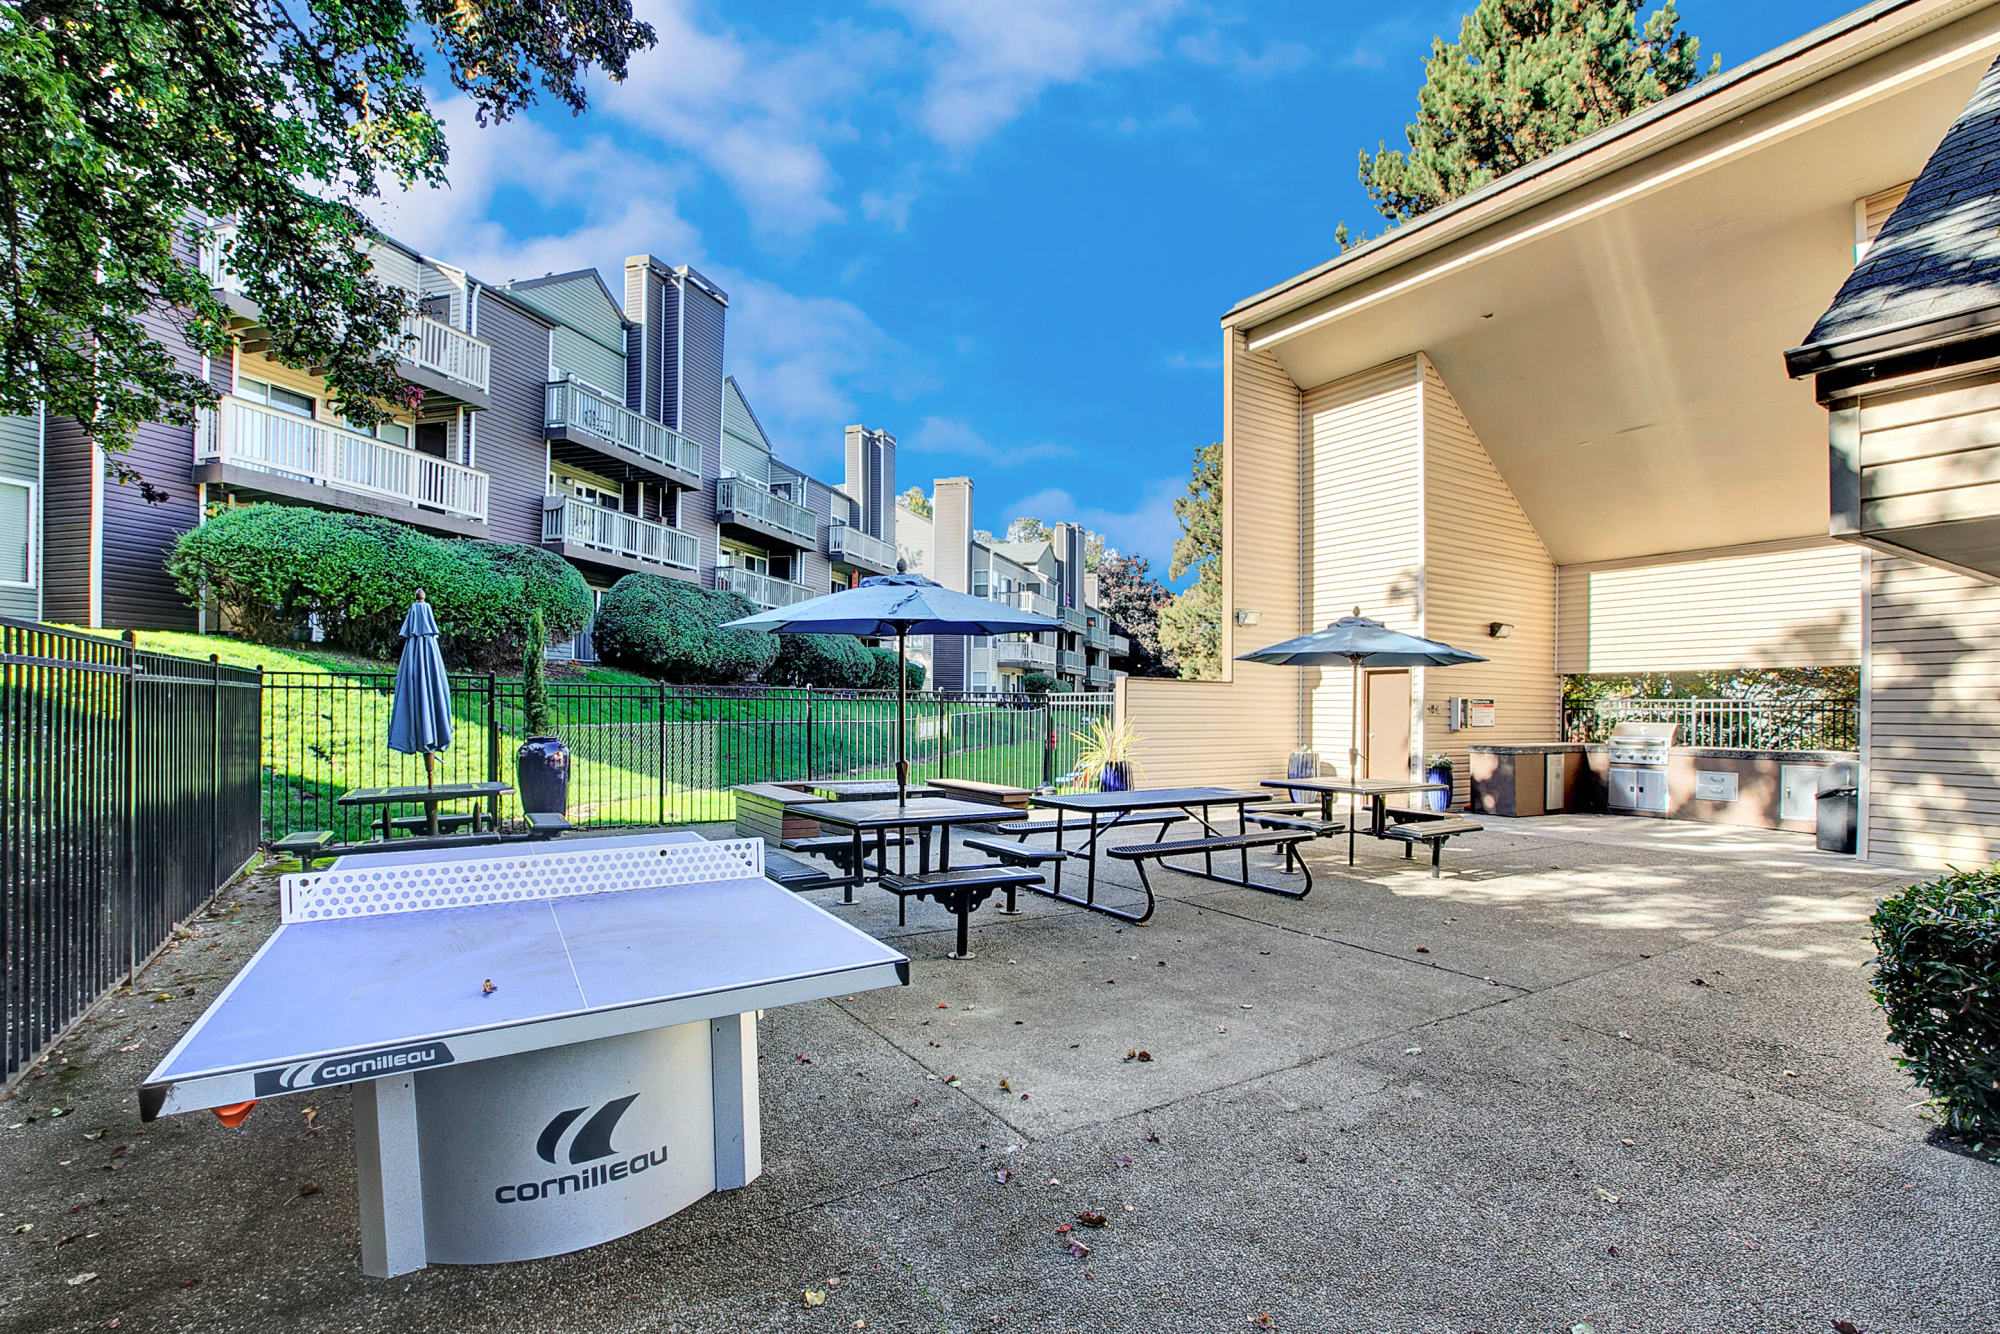 Ping pong table and barbecue area at Park South Apartments in Seattle, Washington